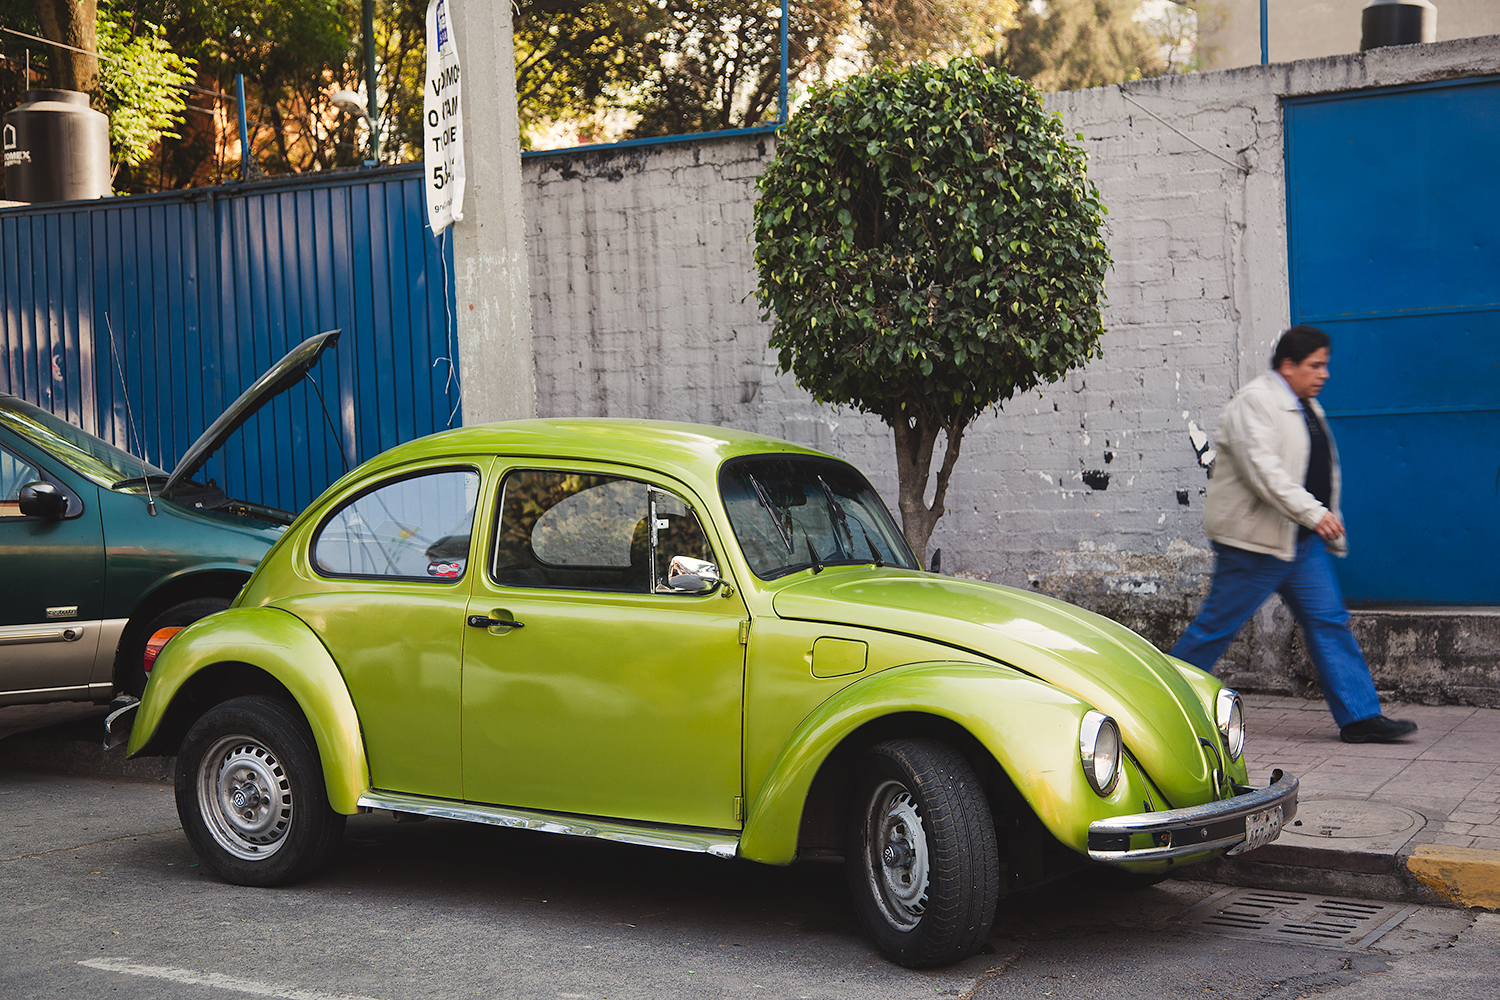 lime green vw bug old volkswagen mexico city df street photography.jpg